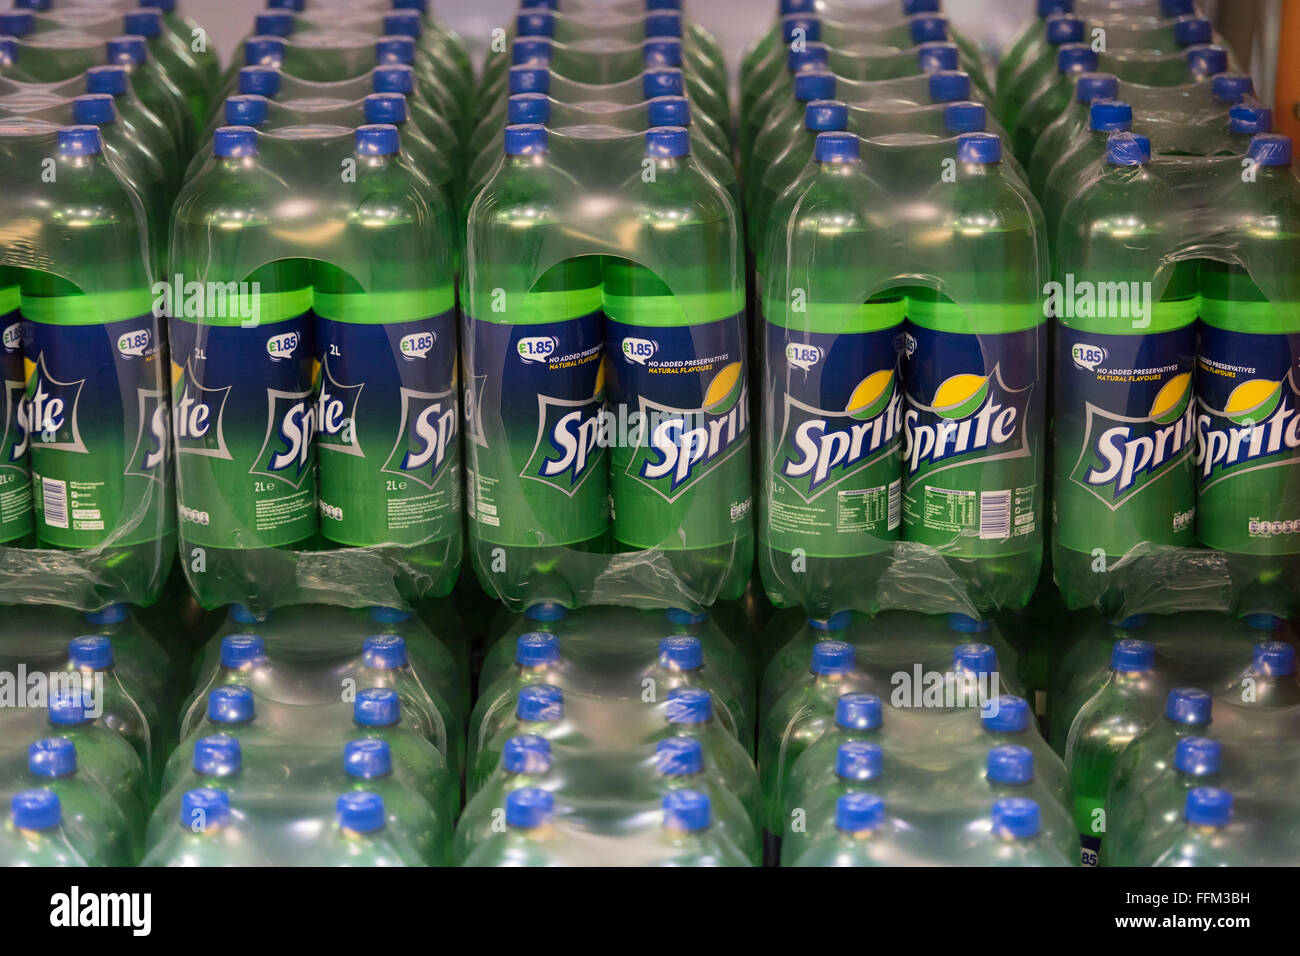 Bottles of sugar soft drink Sprite stocked in a warehouse. - Stock Image